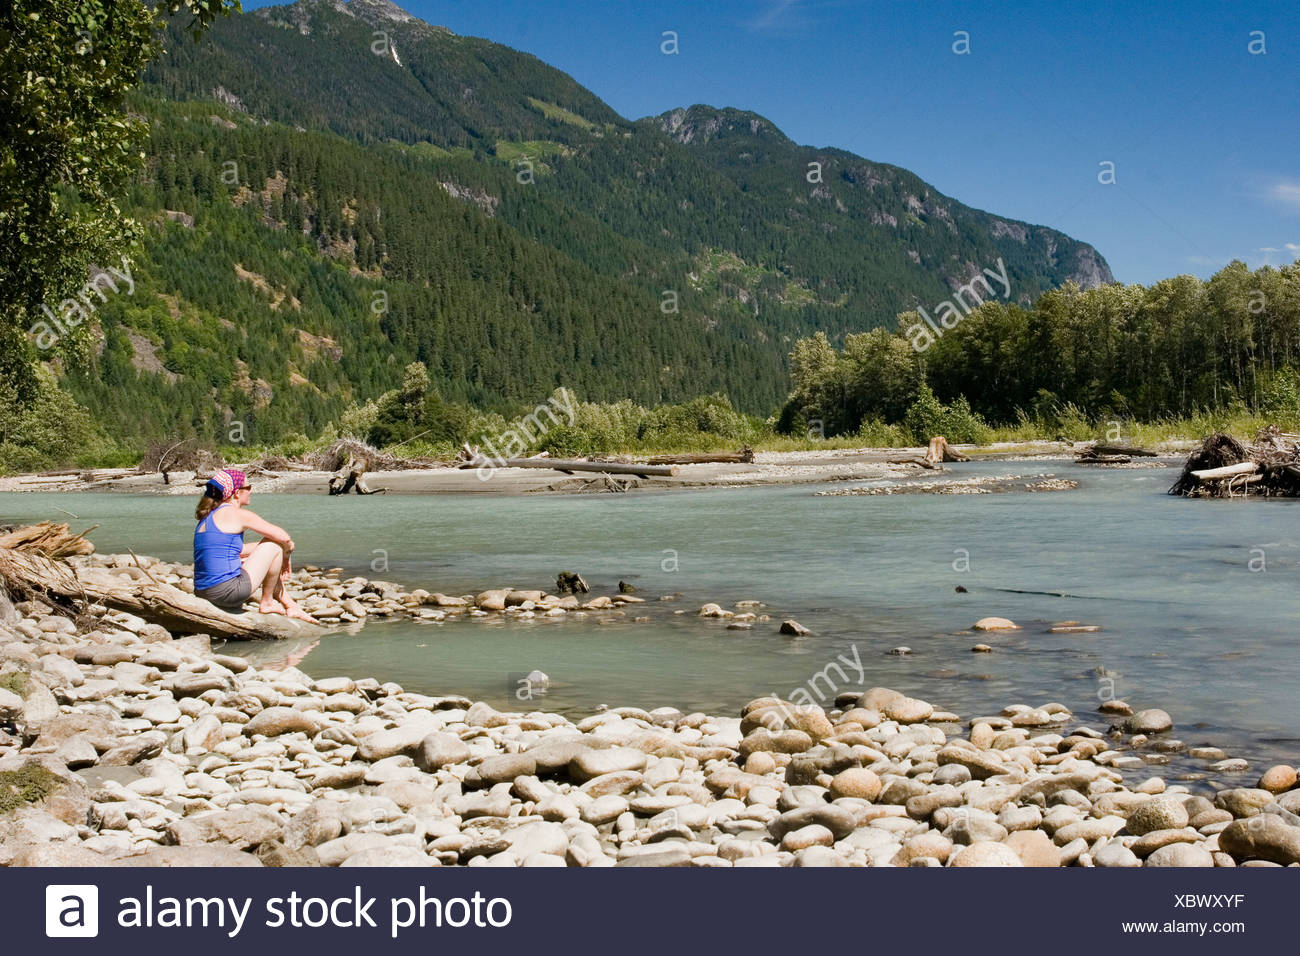 A woman in her late twenties cools off at the Squamish River after a hike near Squamish, British Columbia, Canada. - Stock Image